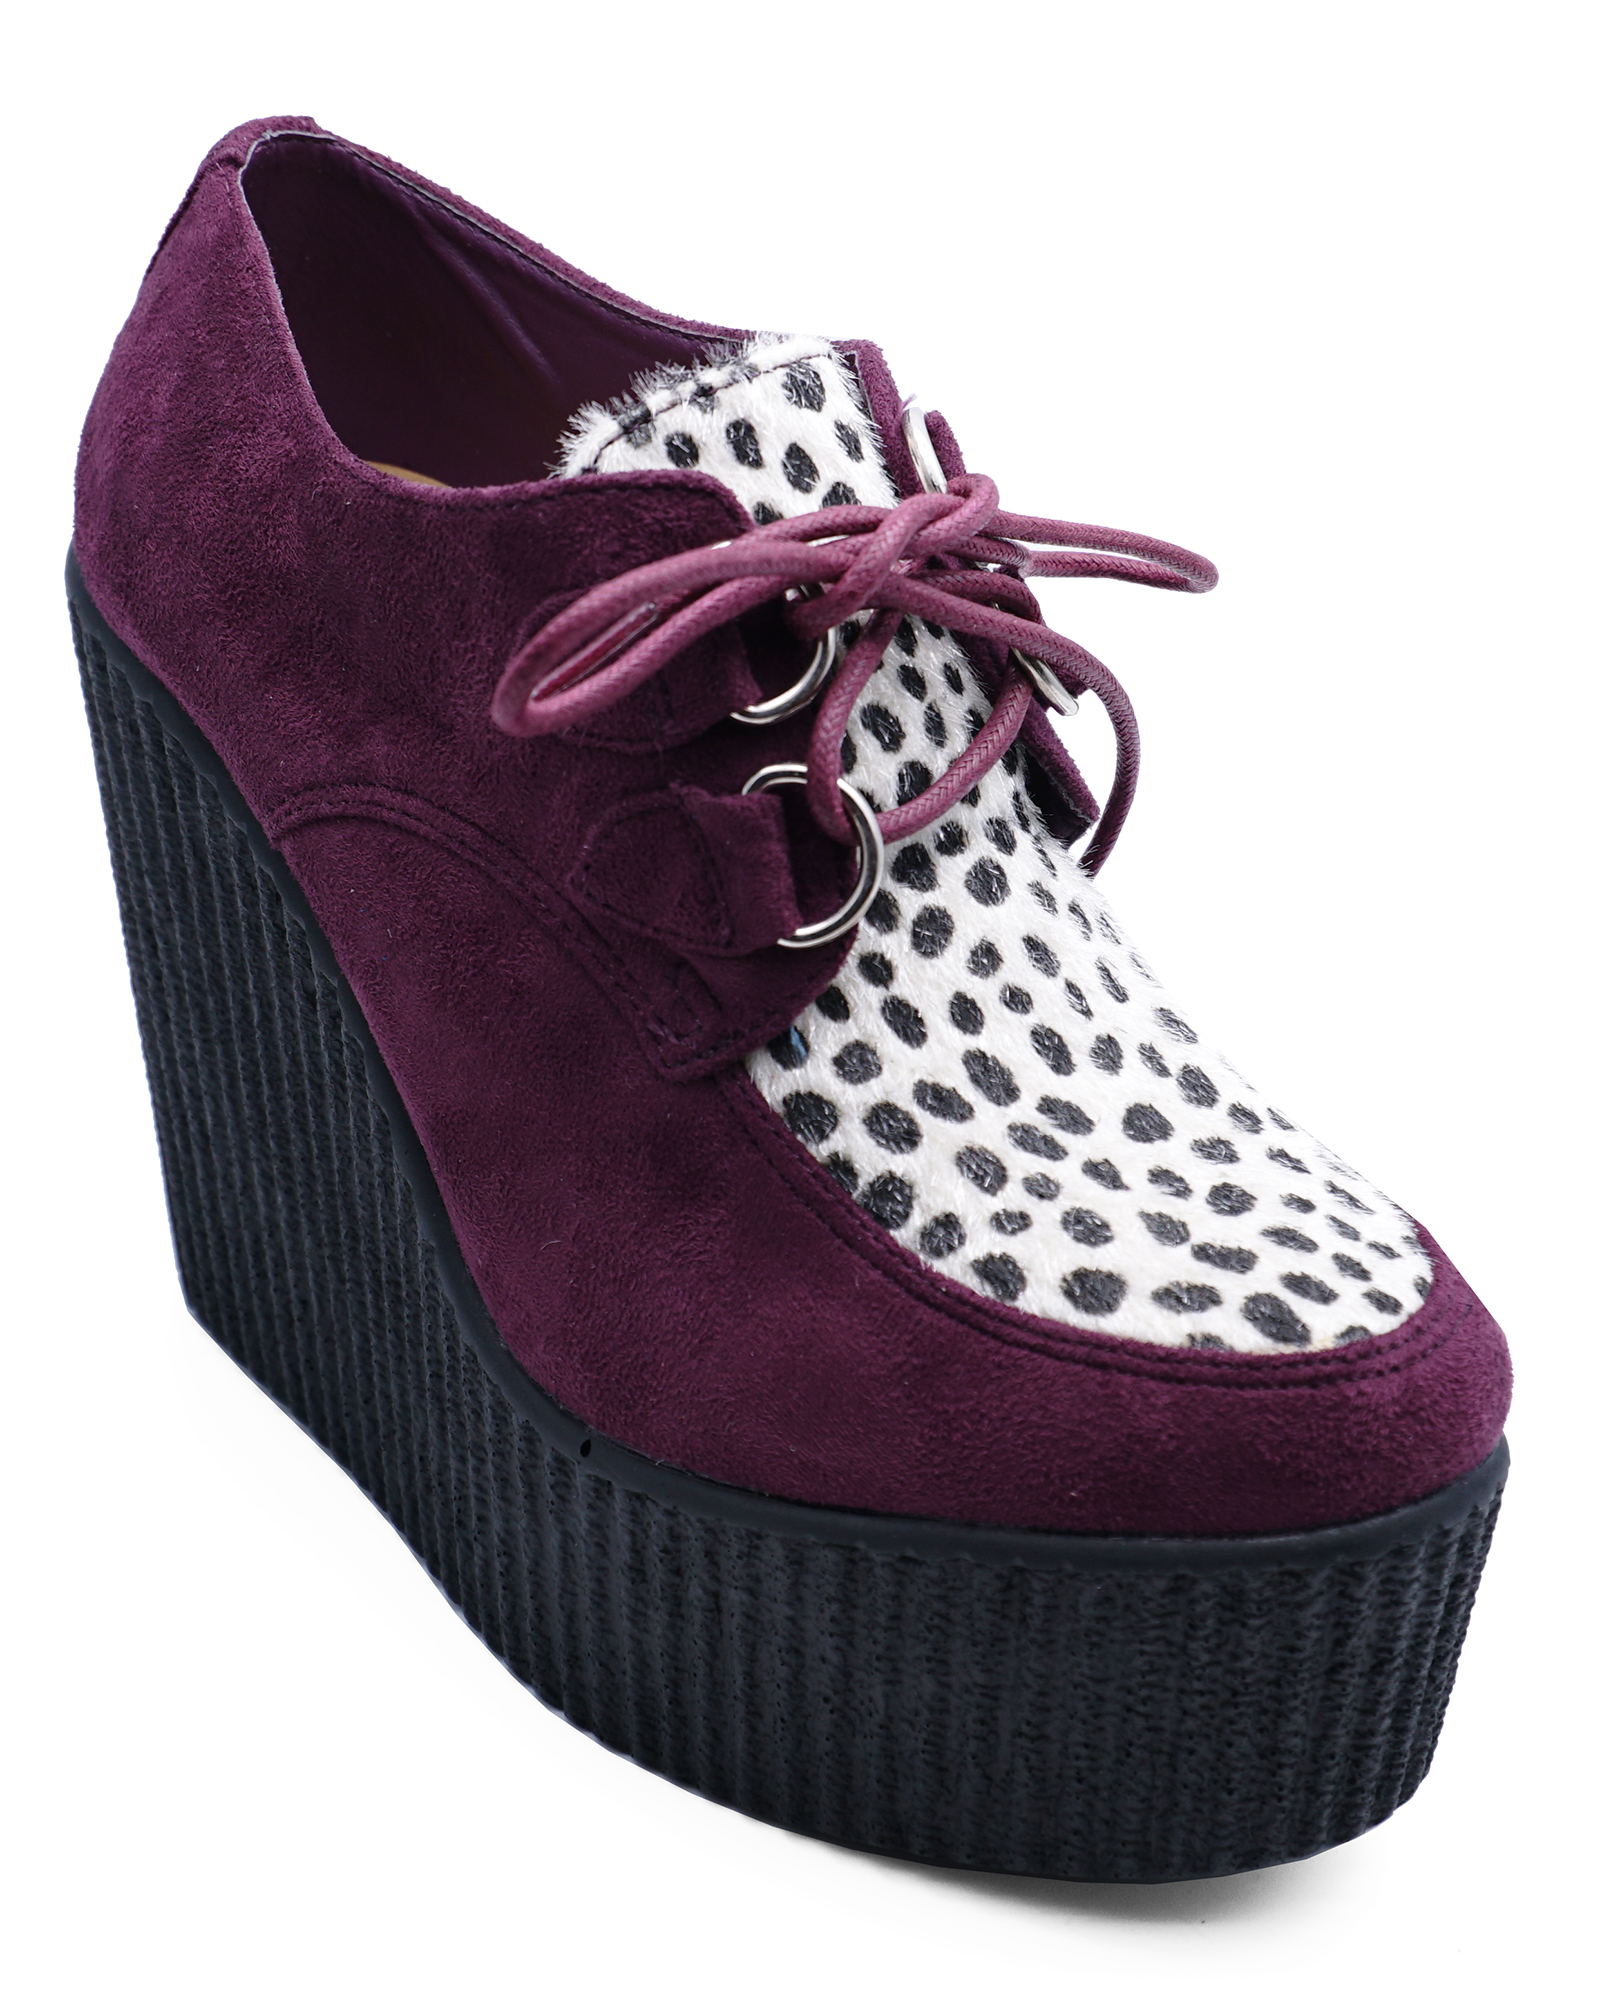 LADIES PURPLE LEOPARD PLATFORM CREEPERS LACE-UP WEDGE BROGUES LOAFERS SHOES 3-8